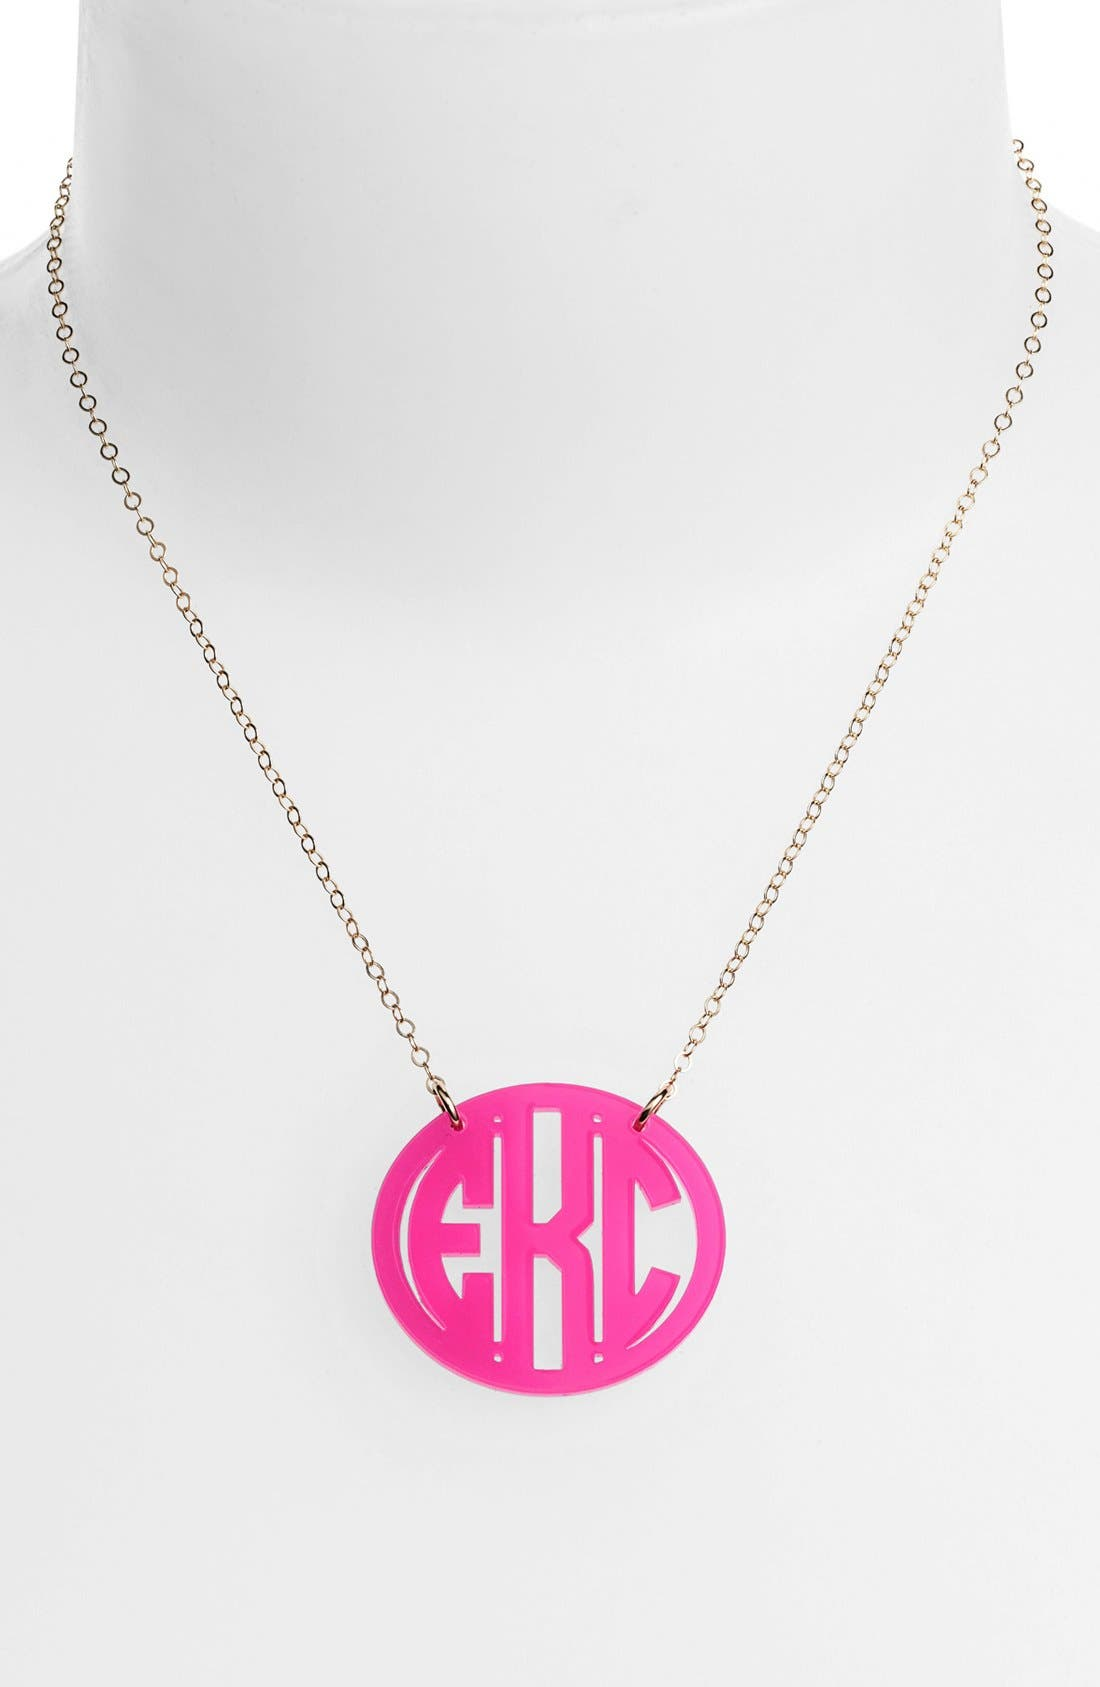 Medium Oval Personalized Monogram Pendant Necklace,                             Main thumbnail 1, color,                             670